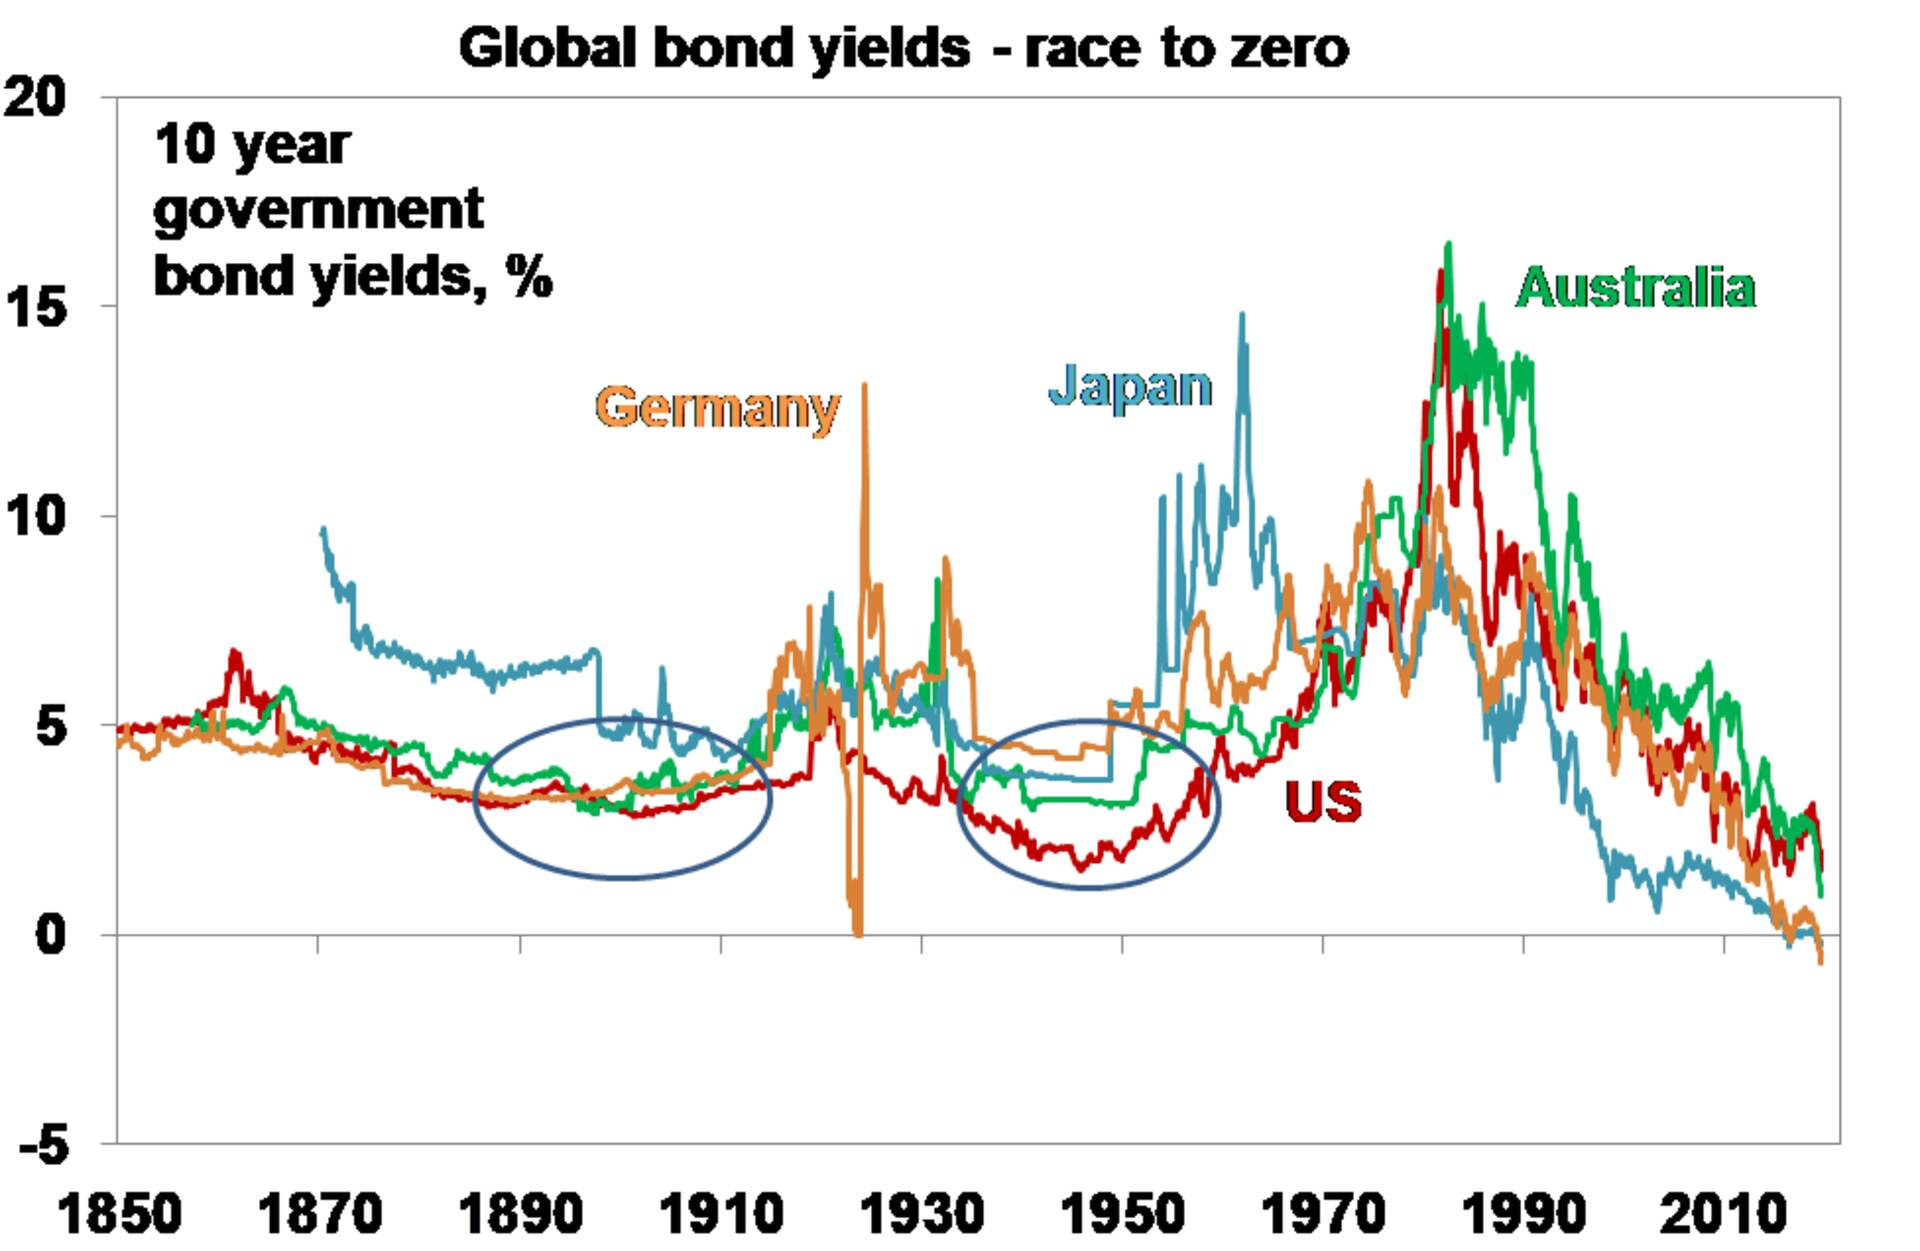 Global bond yields - race to zero graph